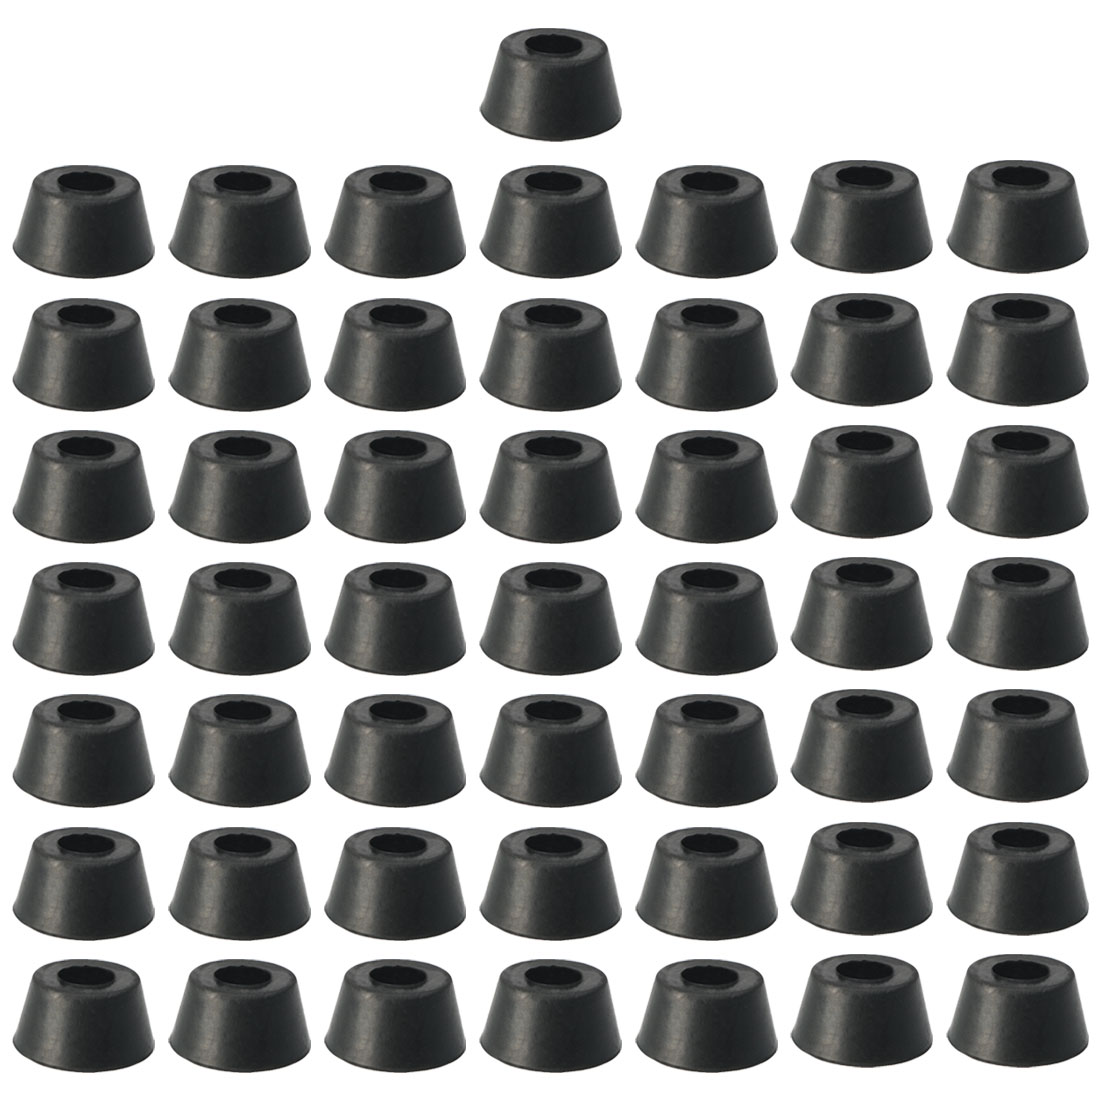 Chair Leg Tips Unique Bargains Unique Bargains 50 X Black Rubber Furniture Couch Chair Leg Tips Caps Floor Protectors 7 16